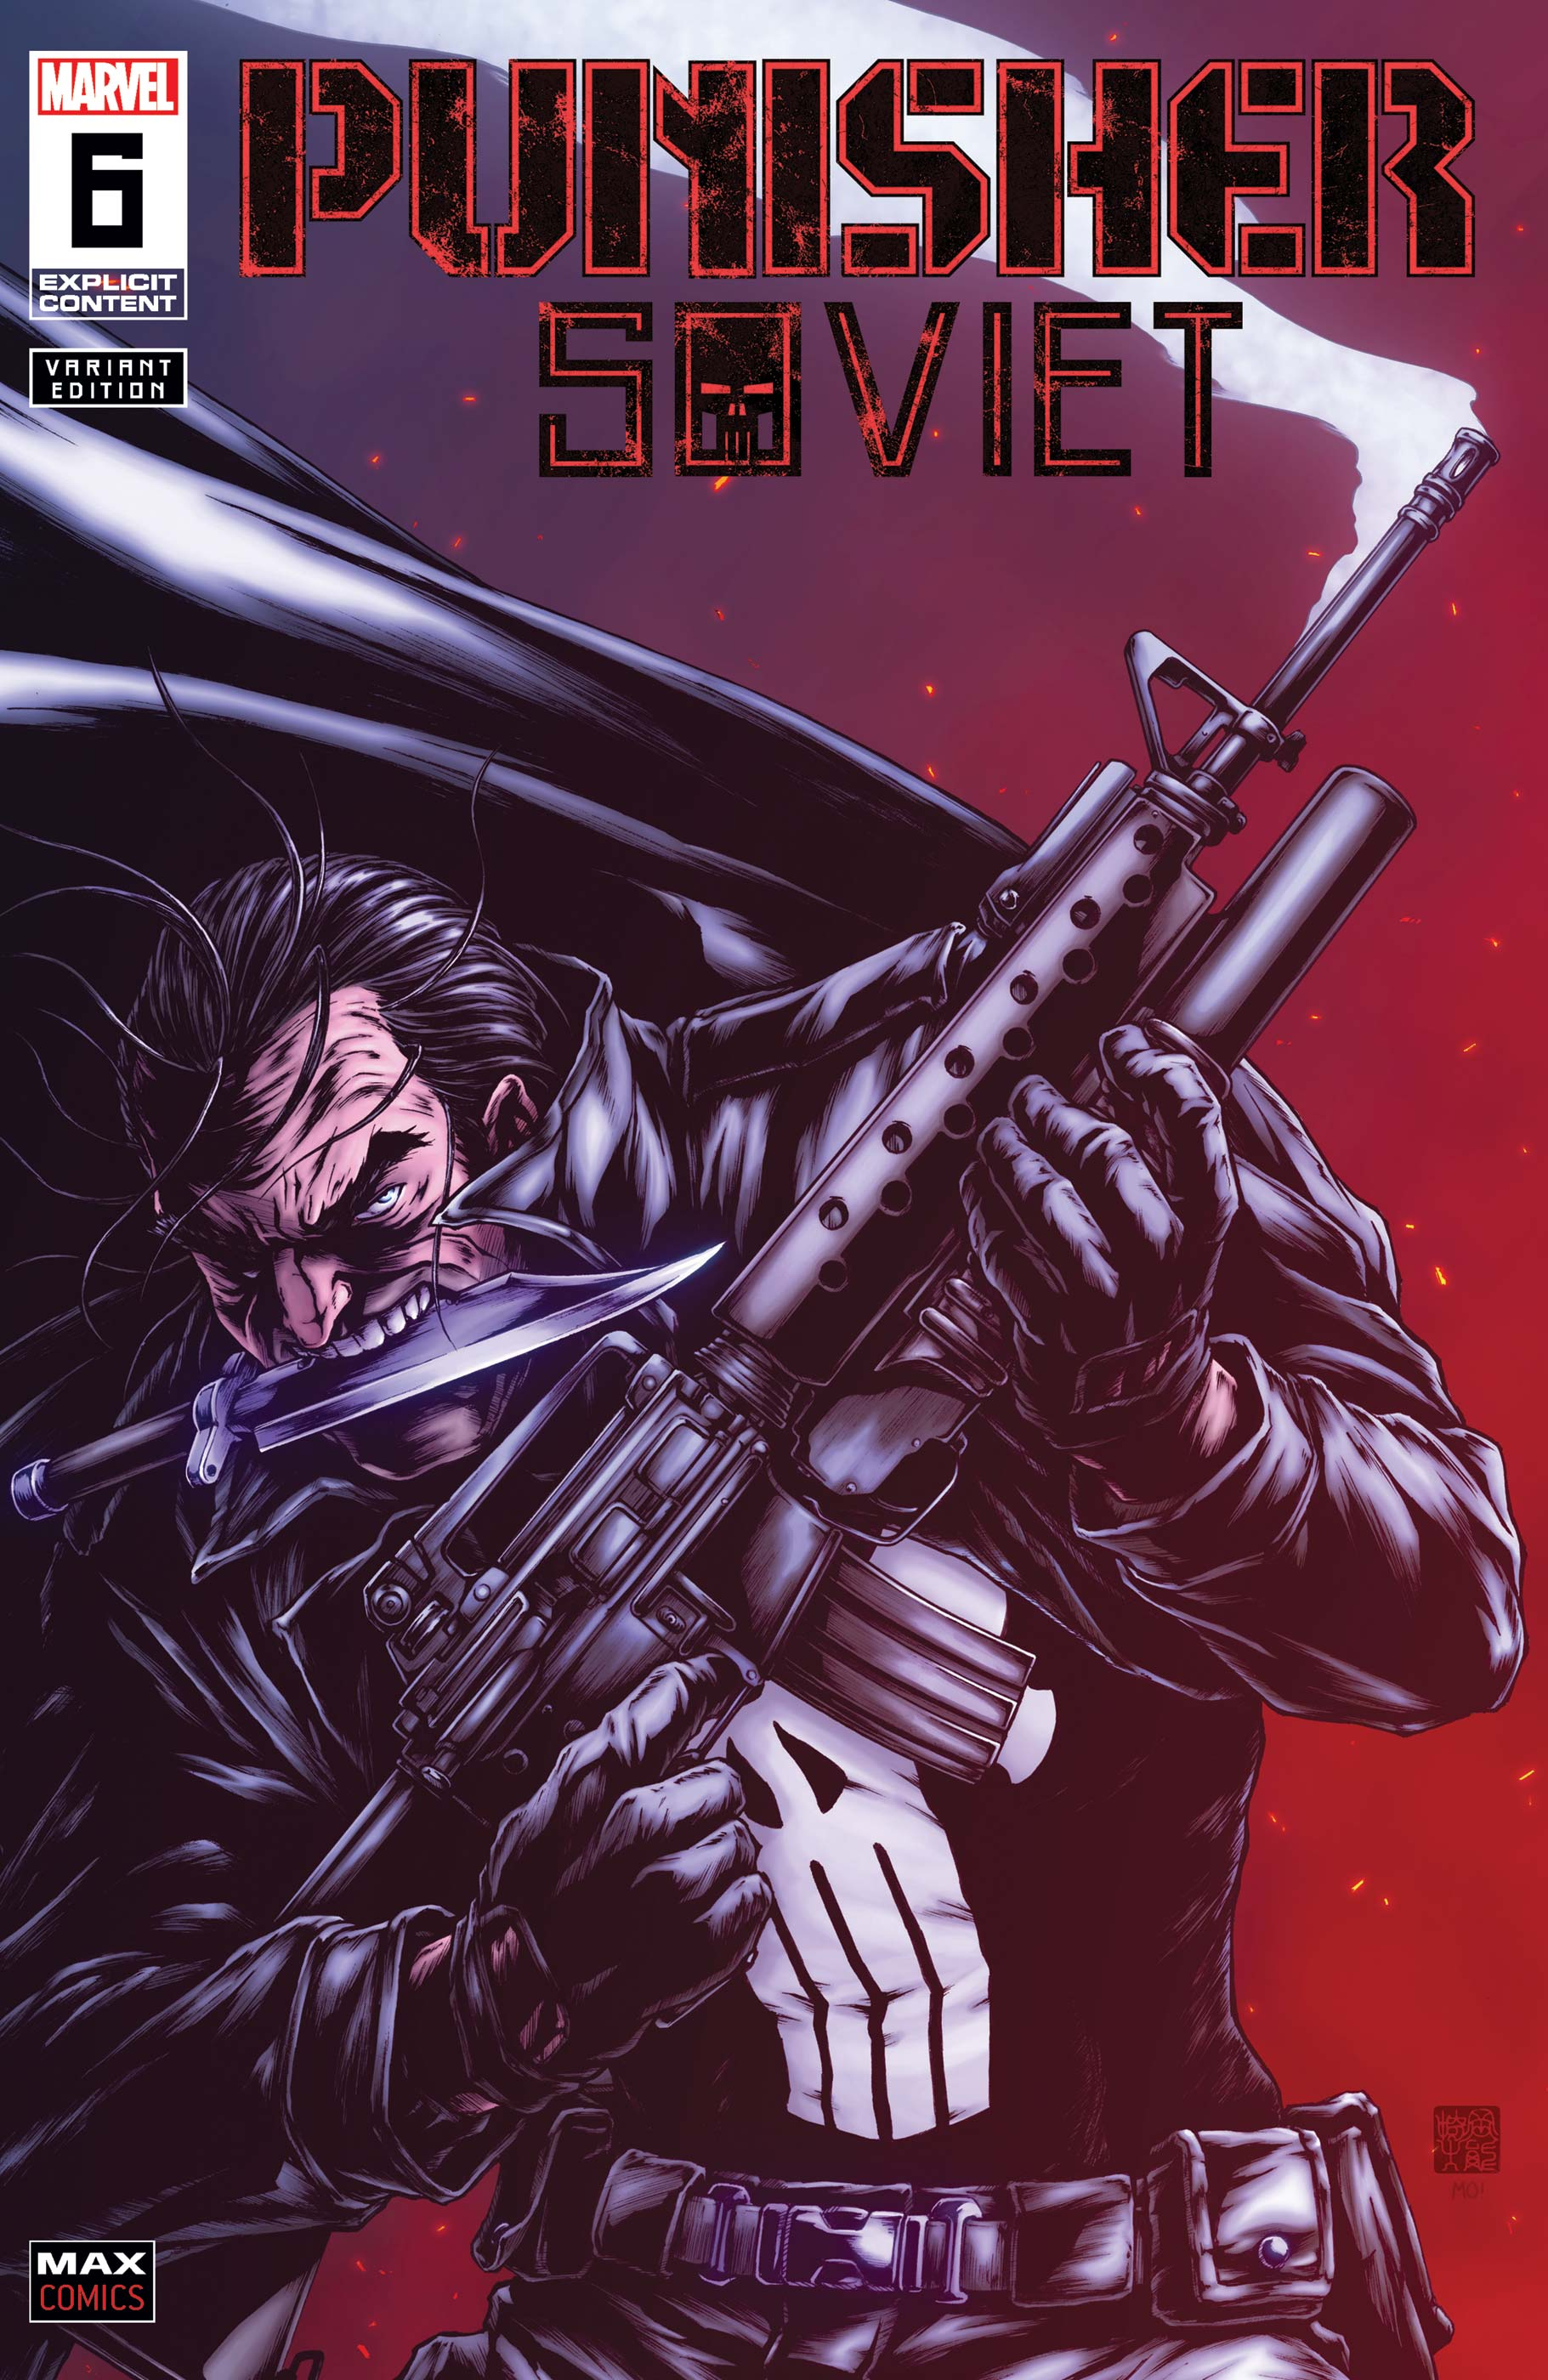 Punisher: Soviet (2019) #6 (Variant)